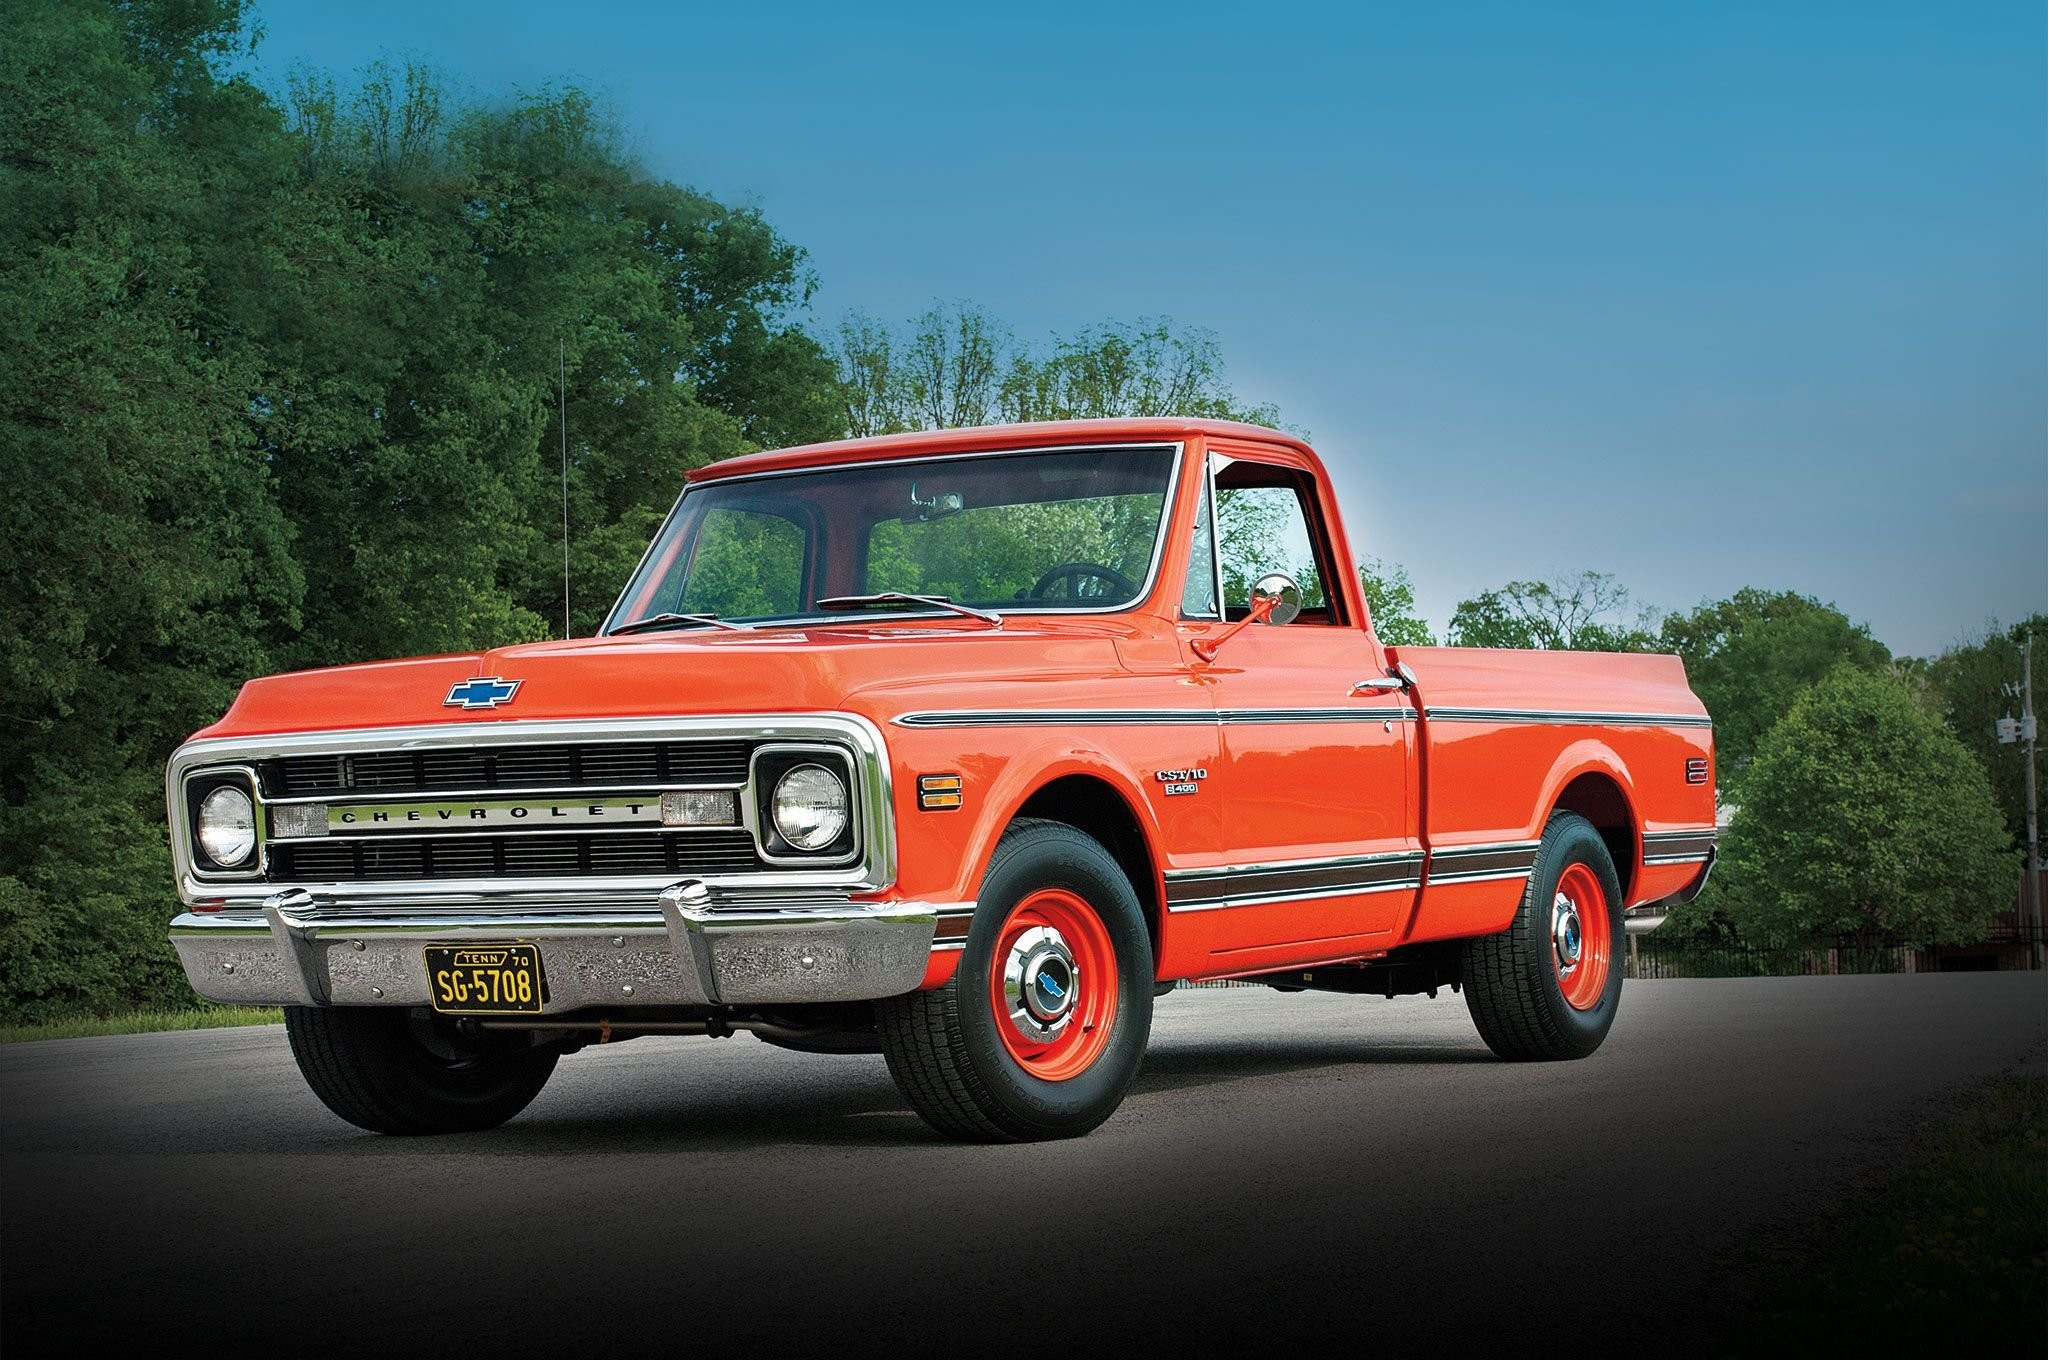 Classic Chevy Truck Wallpapers Old American Pickup Truck 2048x1360 Download Hd Wallpaper Wallpapertip